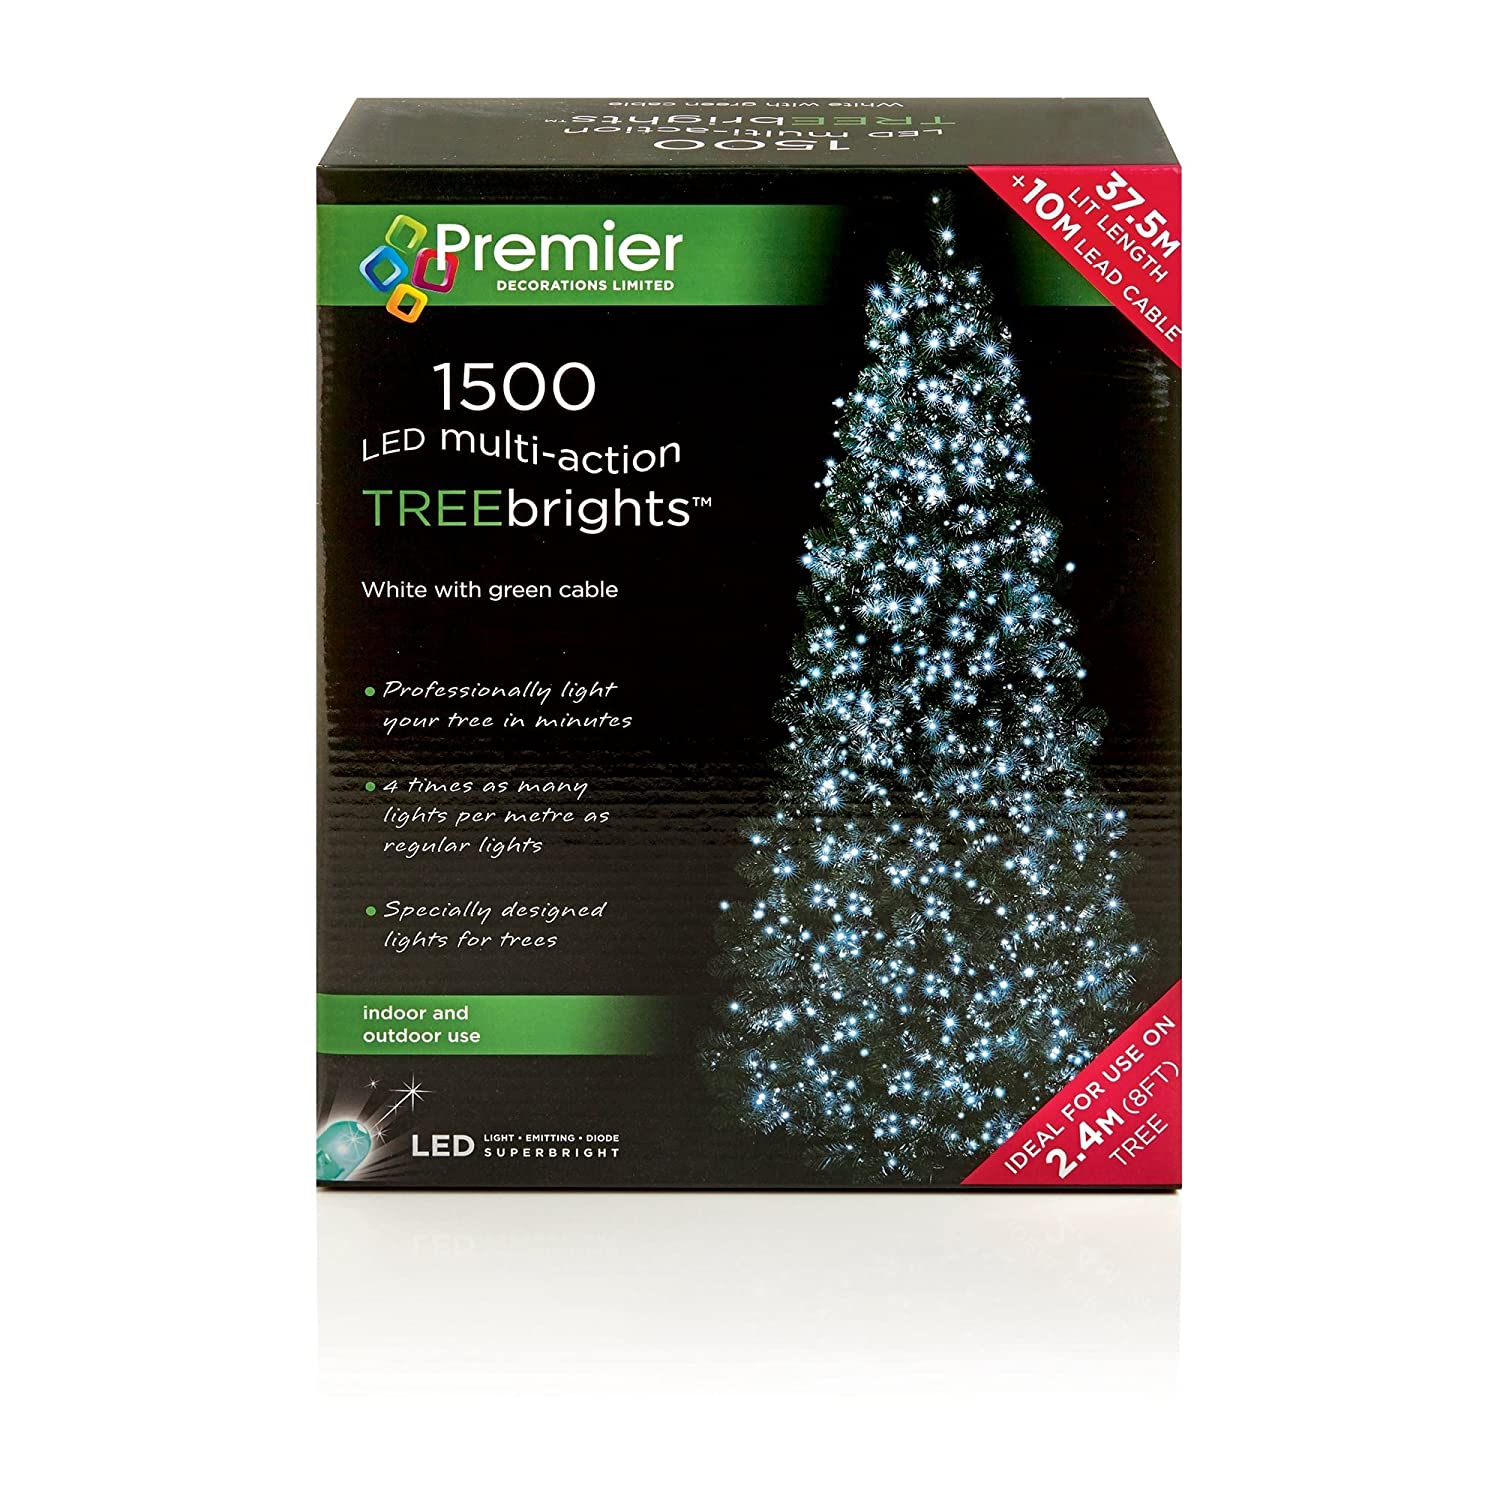 1,500 LED (37.5m) Premier TreeBrights Cluster Christmas Tree Lights Cool White